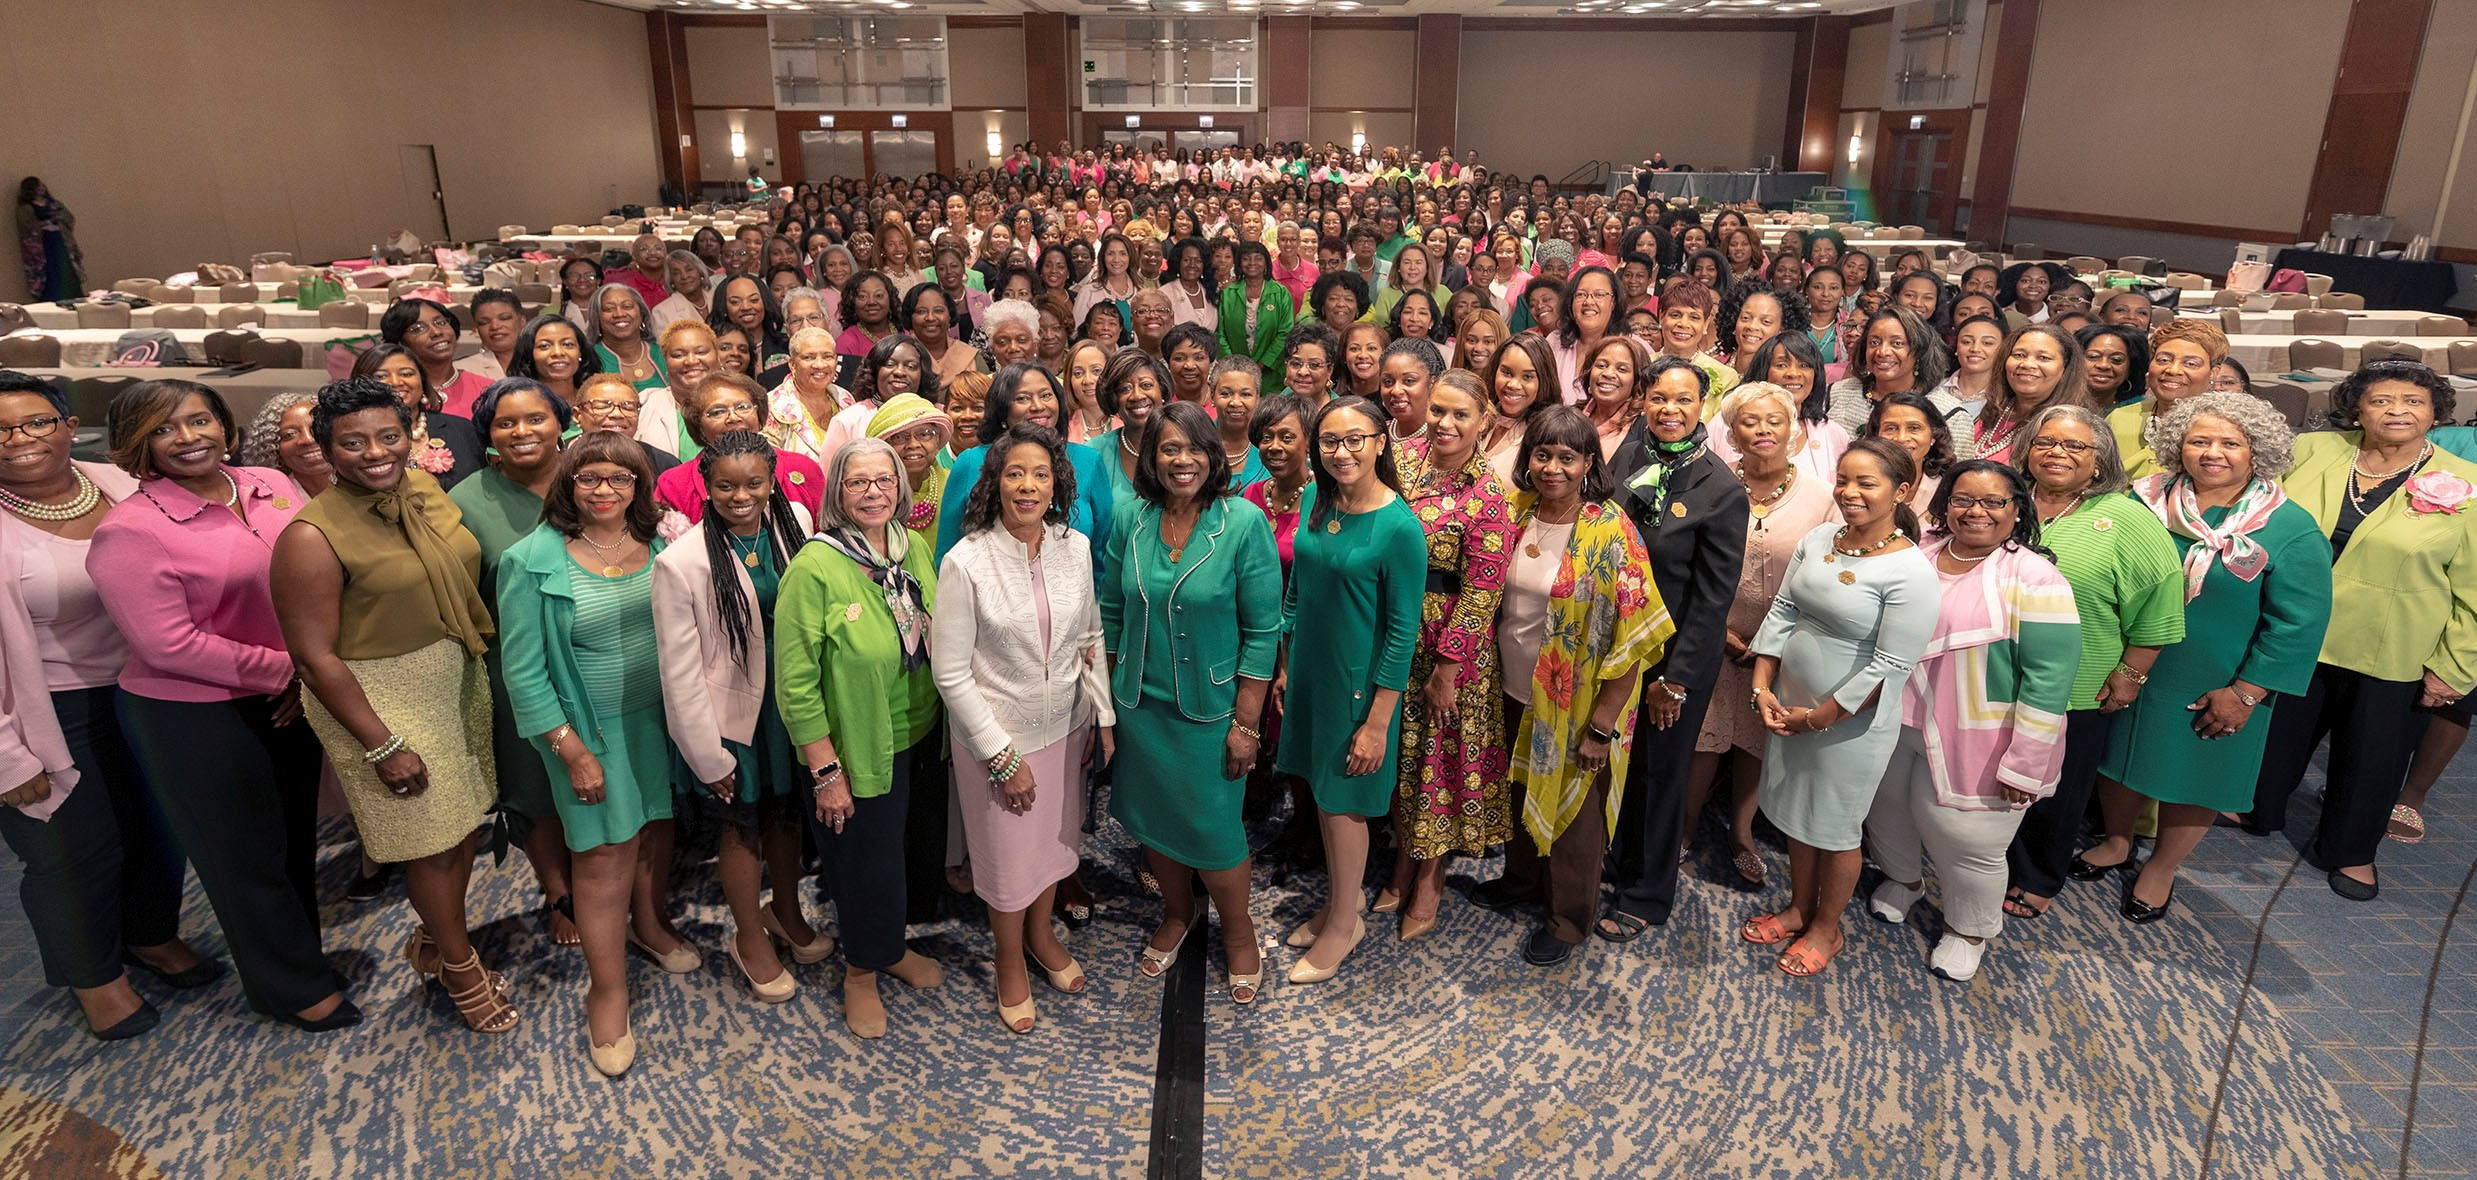 Alpha Kappa Alpha members gather for a photo. Over the course of the next four years, AKA-HBCU Endowment Fund has pledged to distribute $10 million in financial support to 96 accredited institutions. (Courtesy of Alpha Kappa Alpha Sorority Inc.)